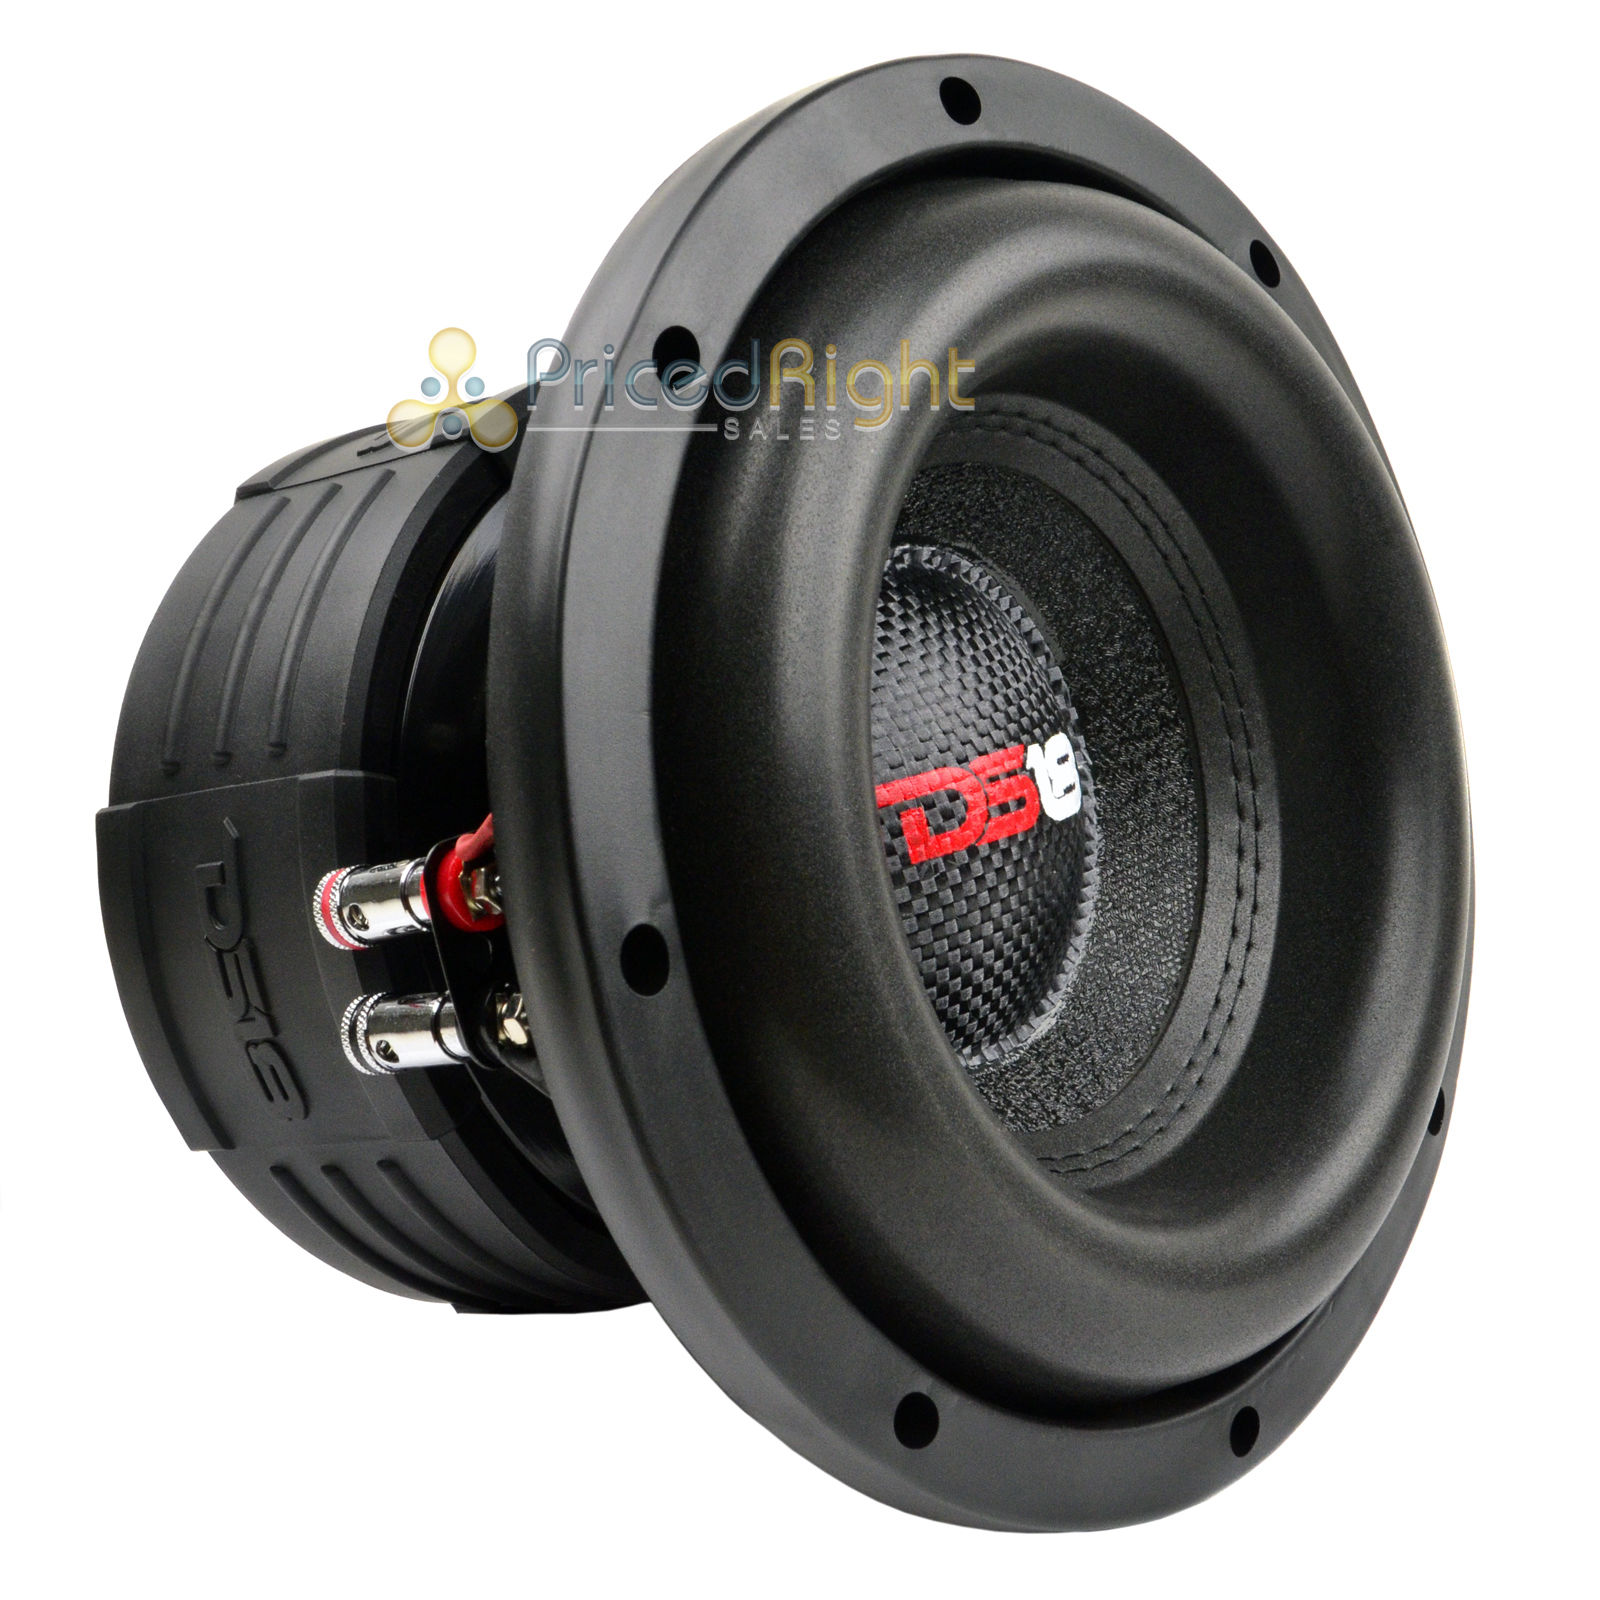 hight resolution of 5 8 ohm subwoofer wiring 4 ohm wiring elsavadorla wiring 4 8 ohm speakers to 4 ohm 3 way 8 ohm speaker wiring